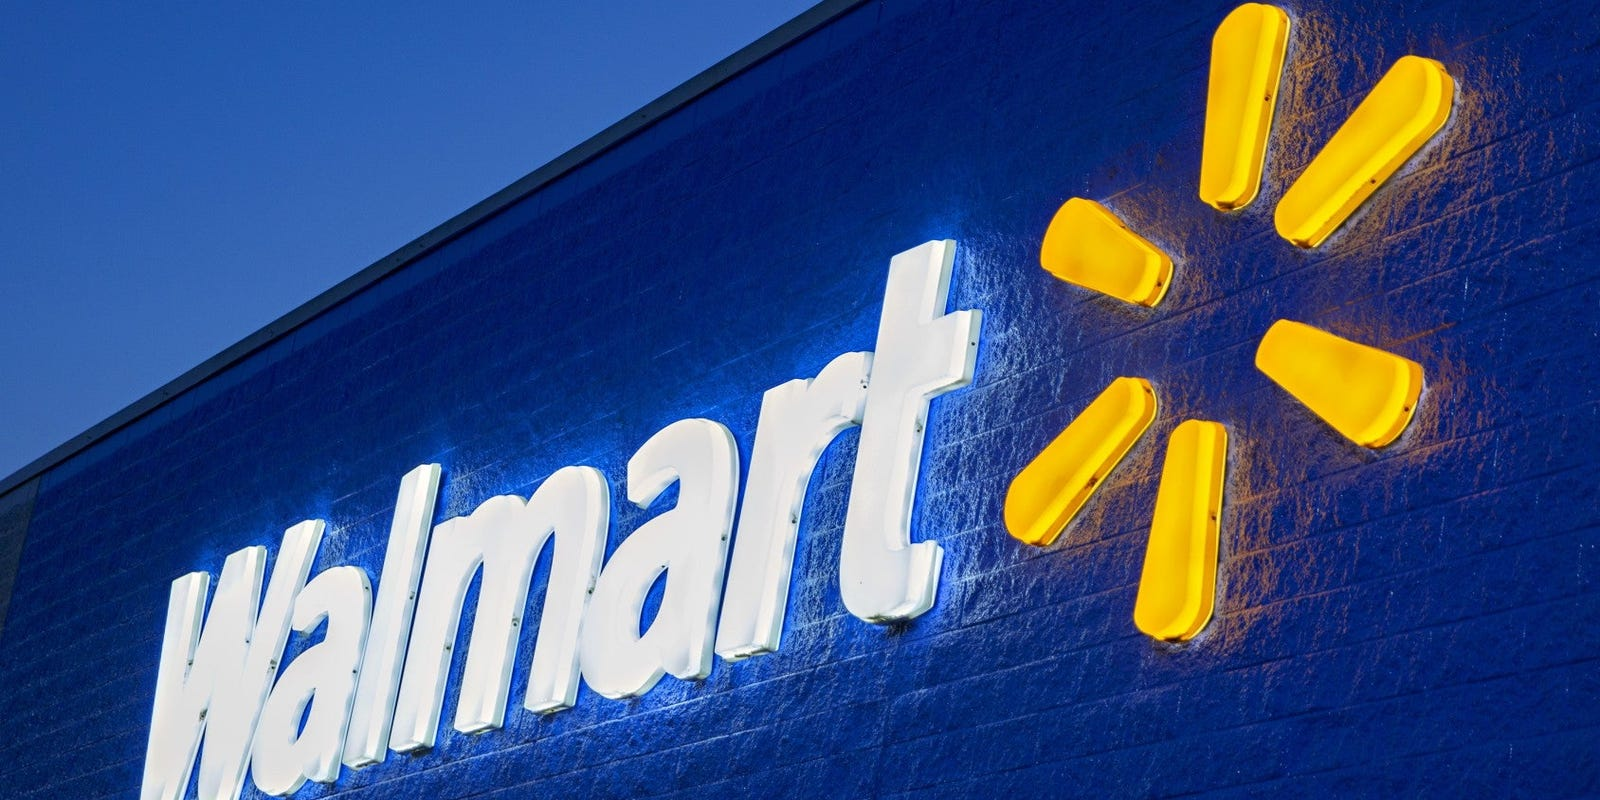 Walmart and Sam's Club to require masks nationwide starting July 20 as COVID-19 cases rise – USA TODAY